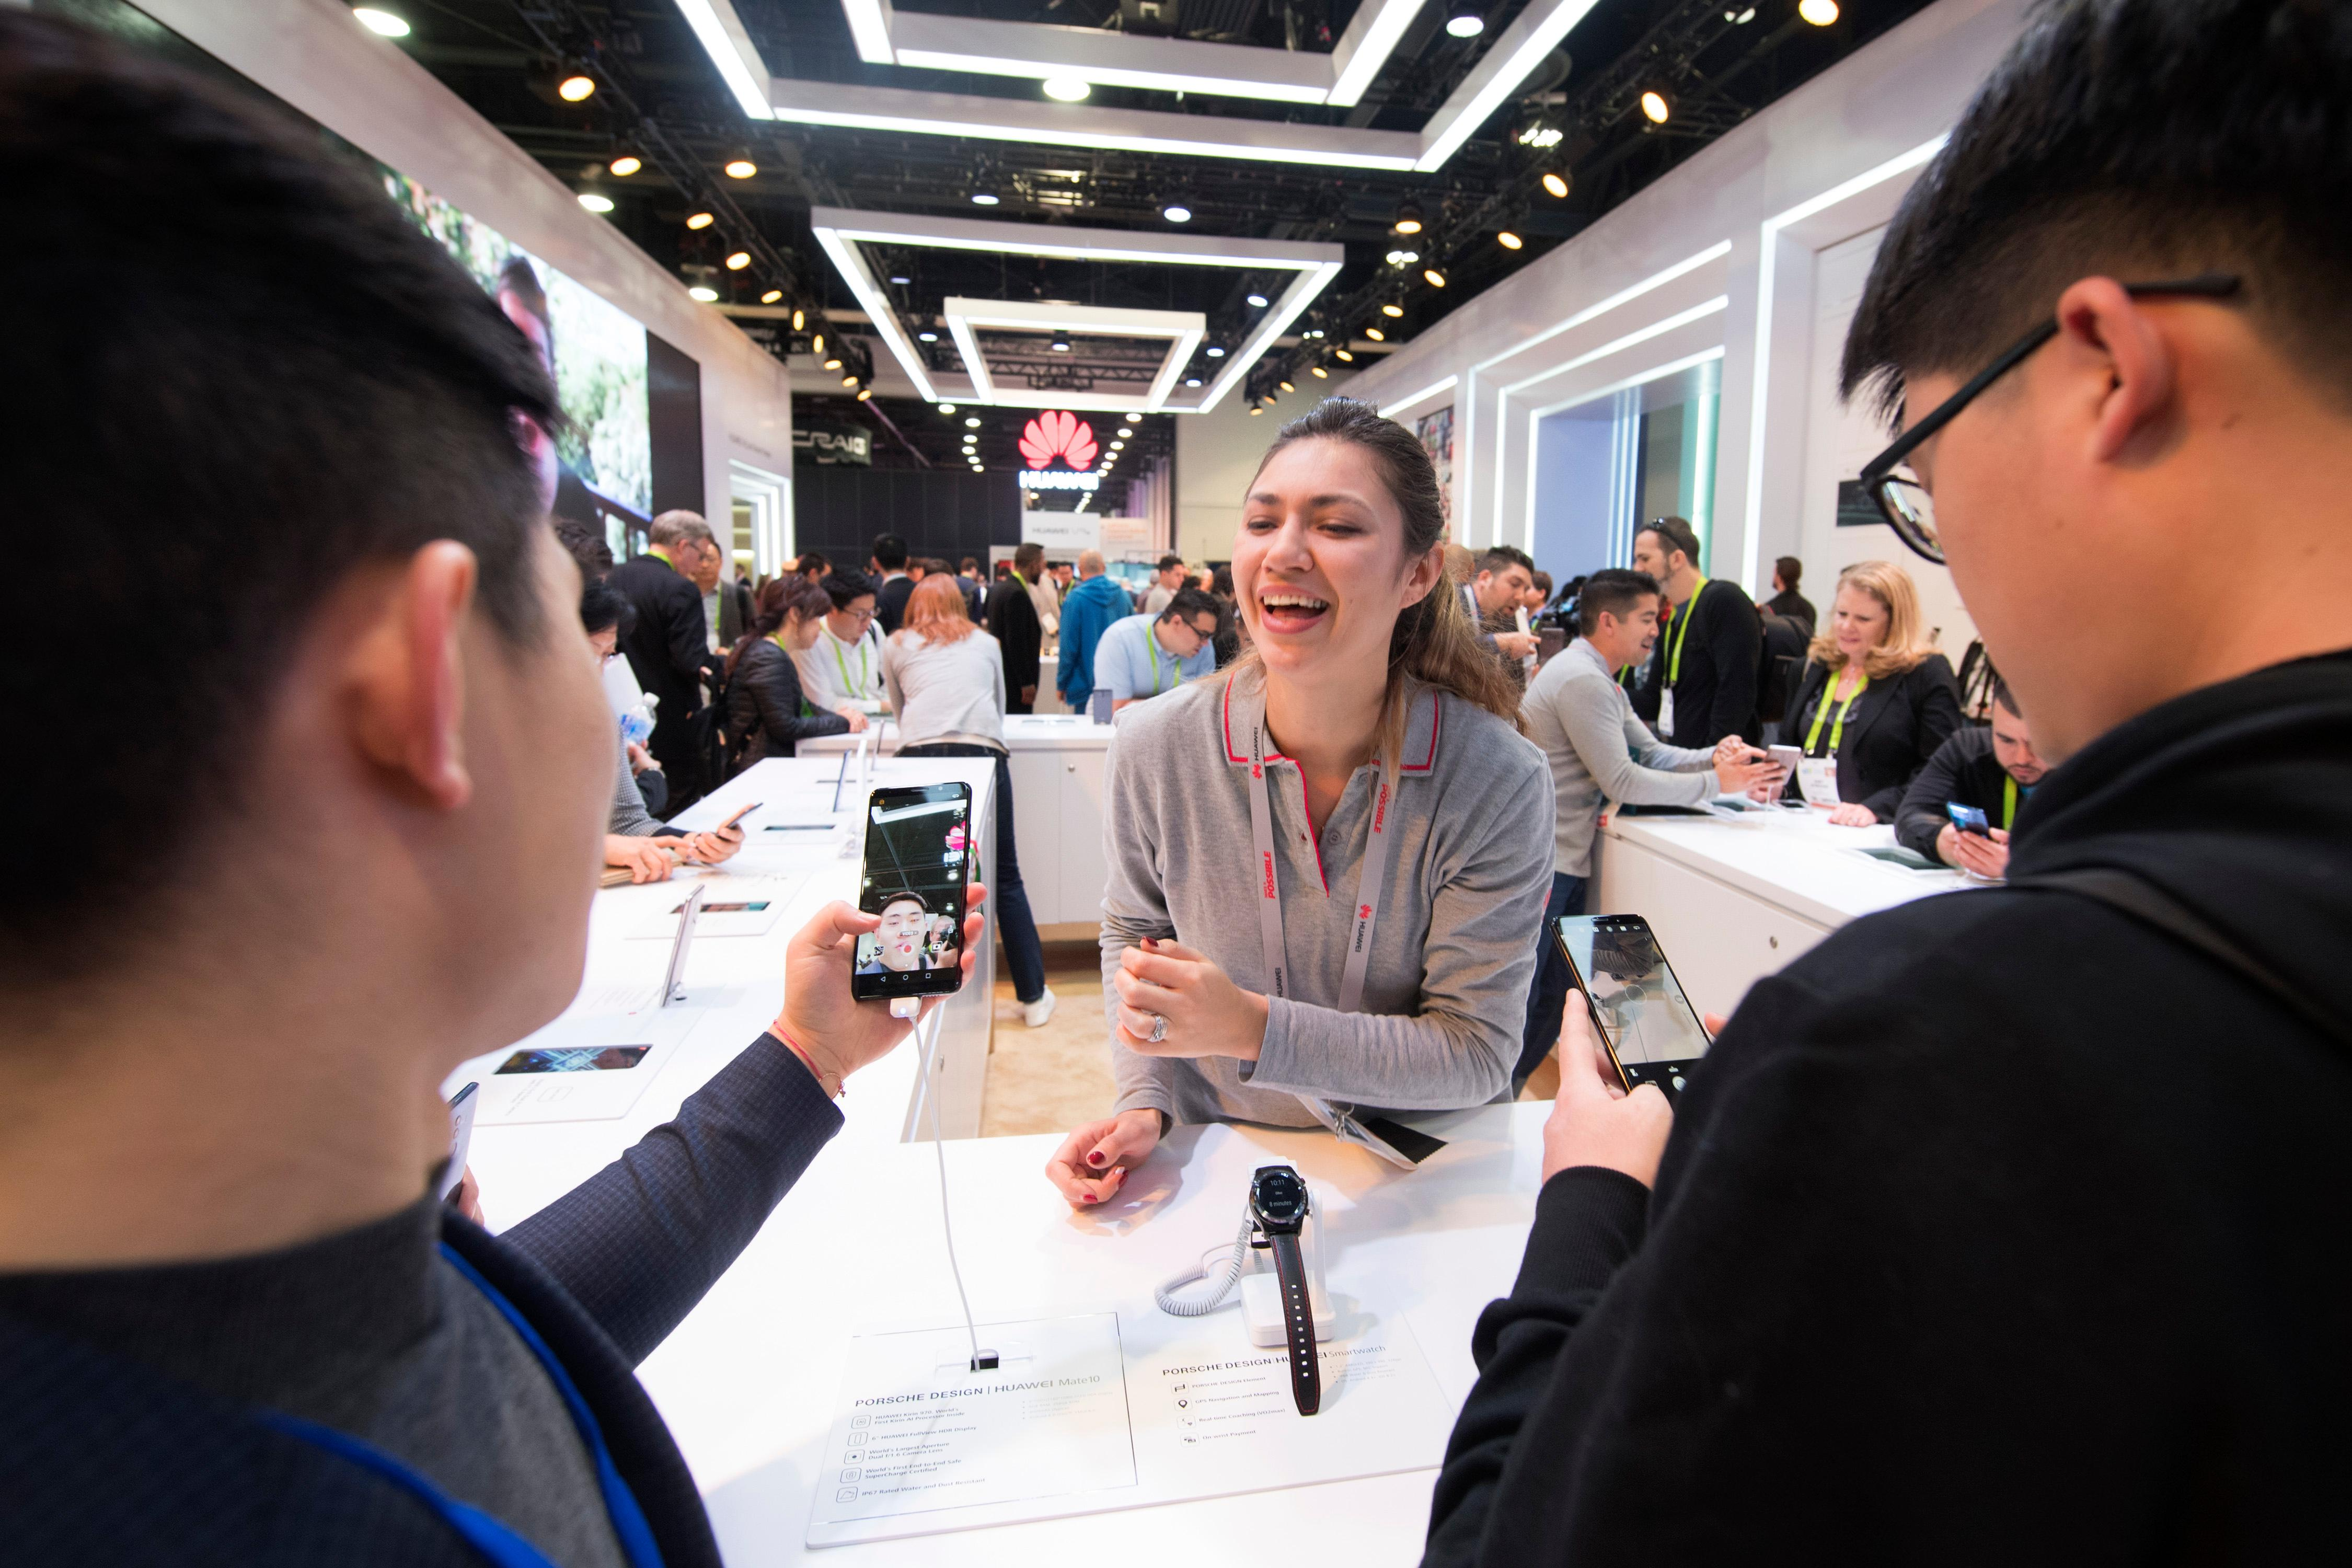 Mera Kolisnyk from Huawei demonstrates their phones during the second day of CES Wednesday, January 10, 2018, at the Las Vegas Convention Center. CREDIT: Sam Morris/Las Vegas News Bureau